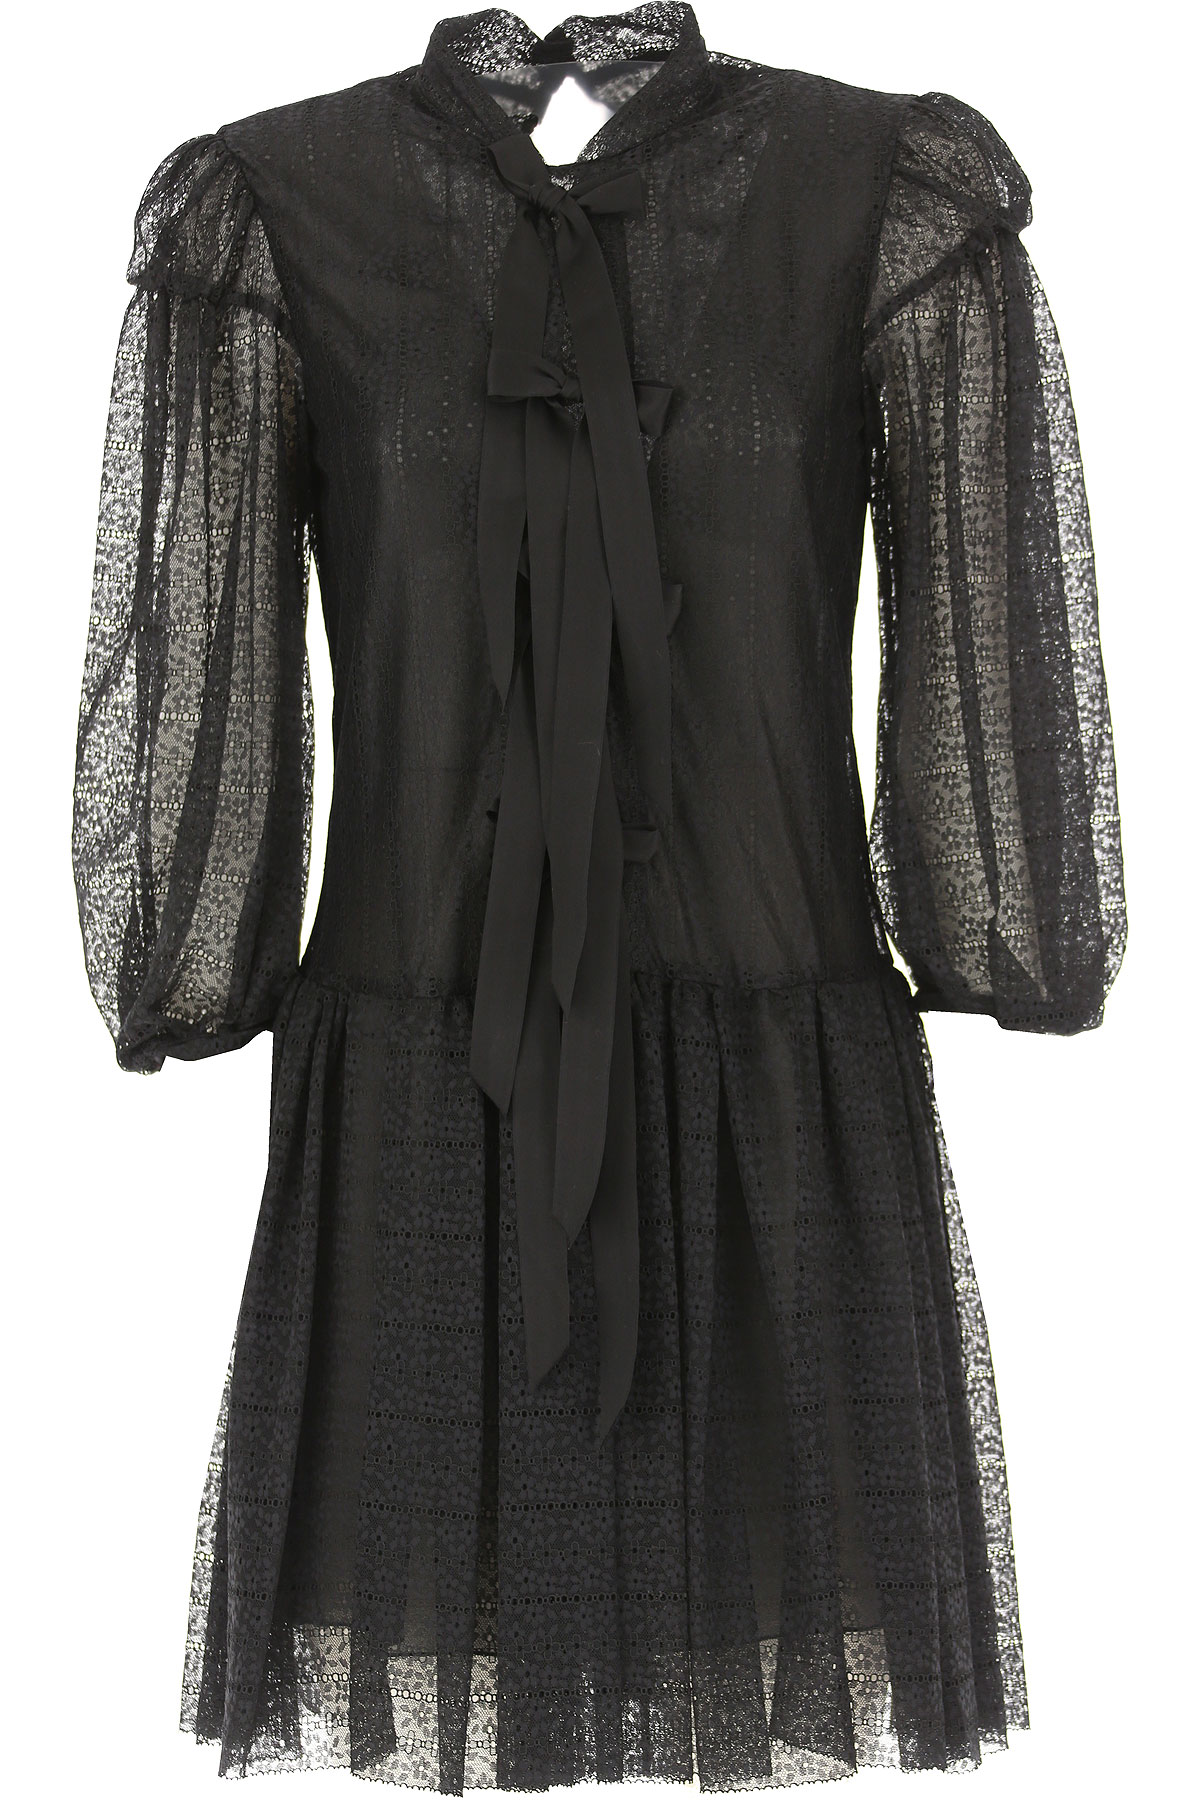 Image of Alberta Ferretti Dress for Women, Evening Cocktail Party, Black, polyamide, 2017, 2 4